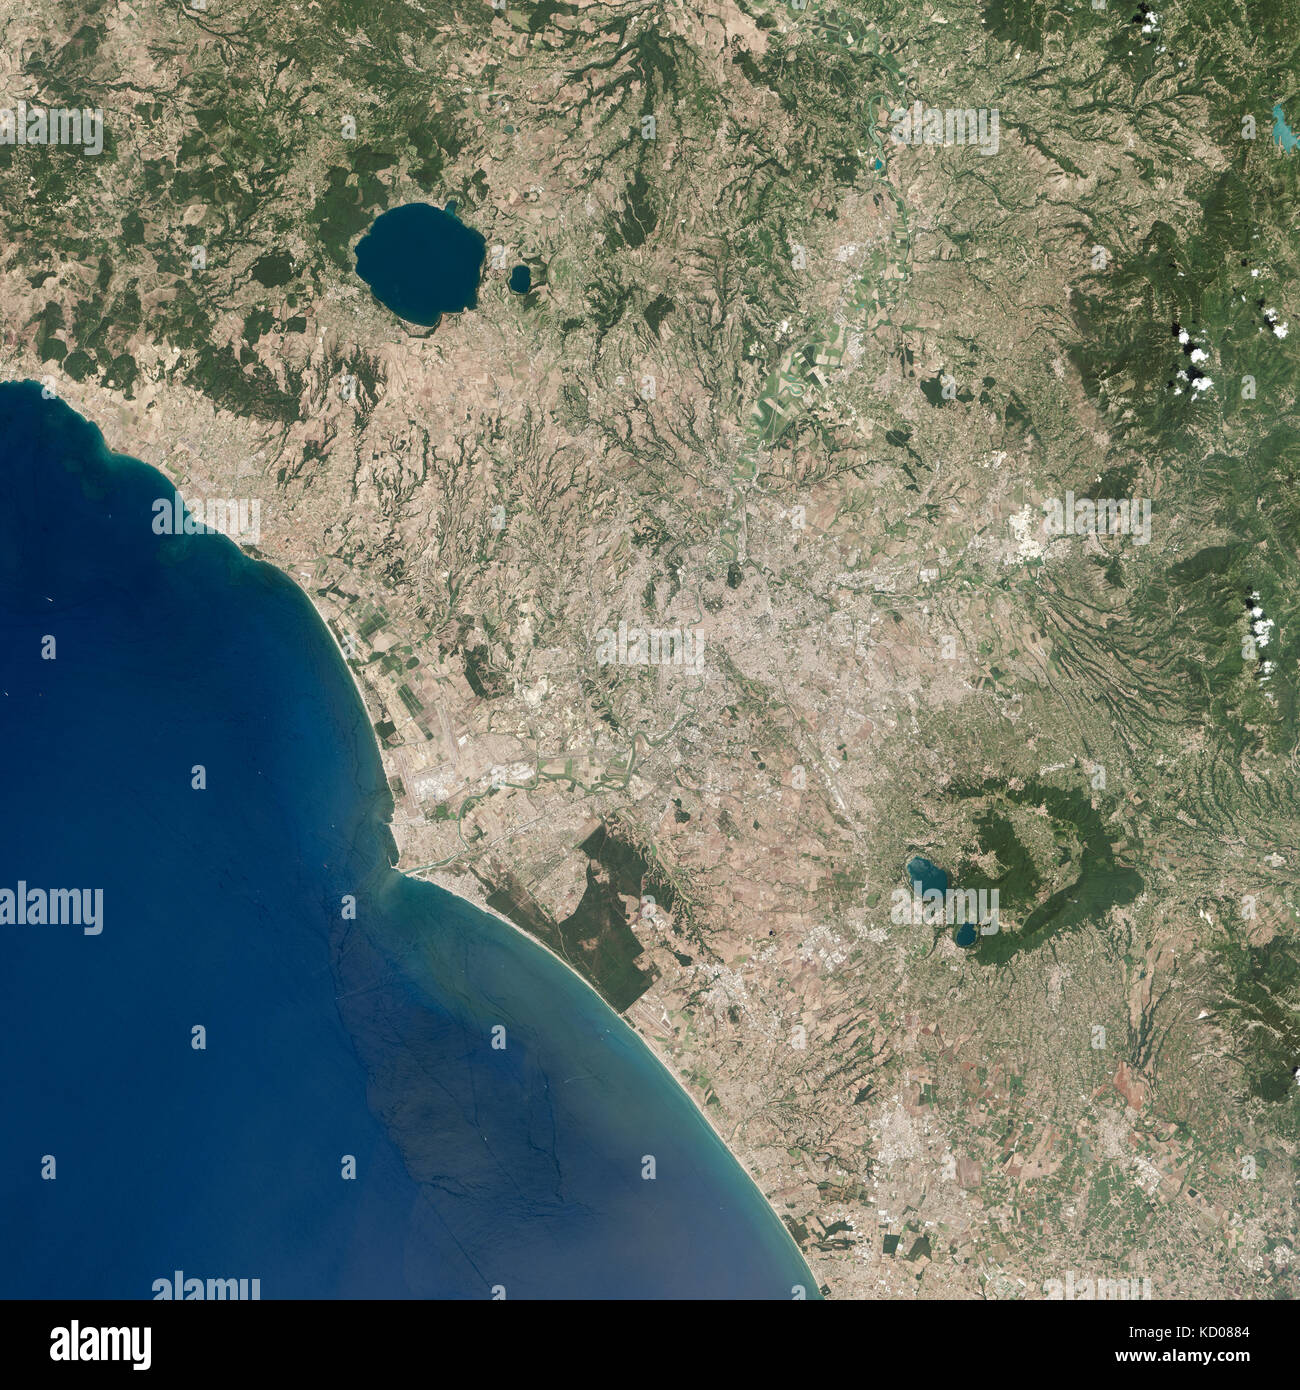 Rome and its coast, Italy, Satellite view - Stock Image